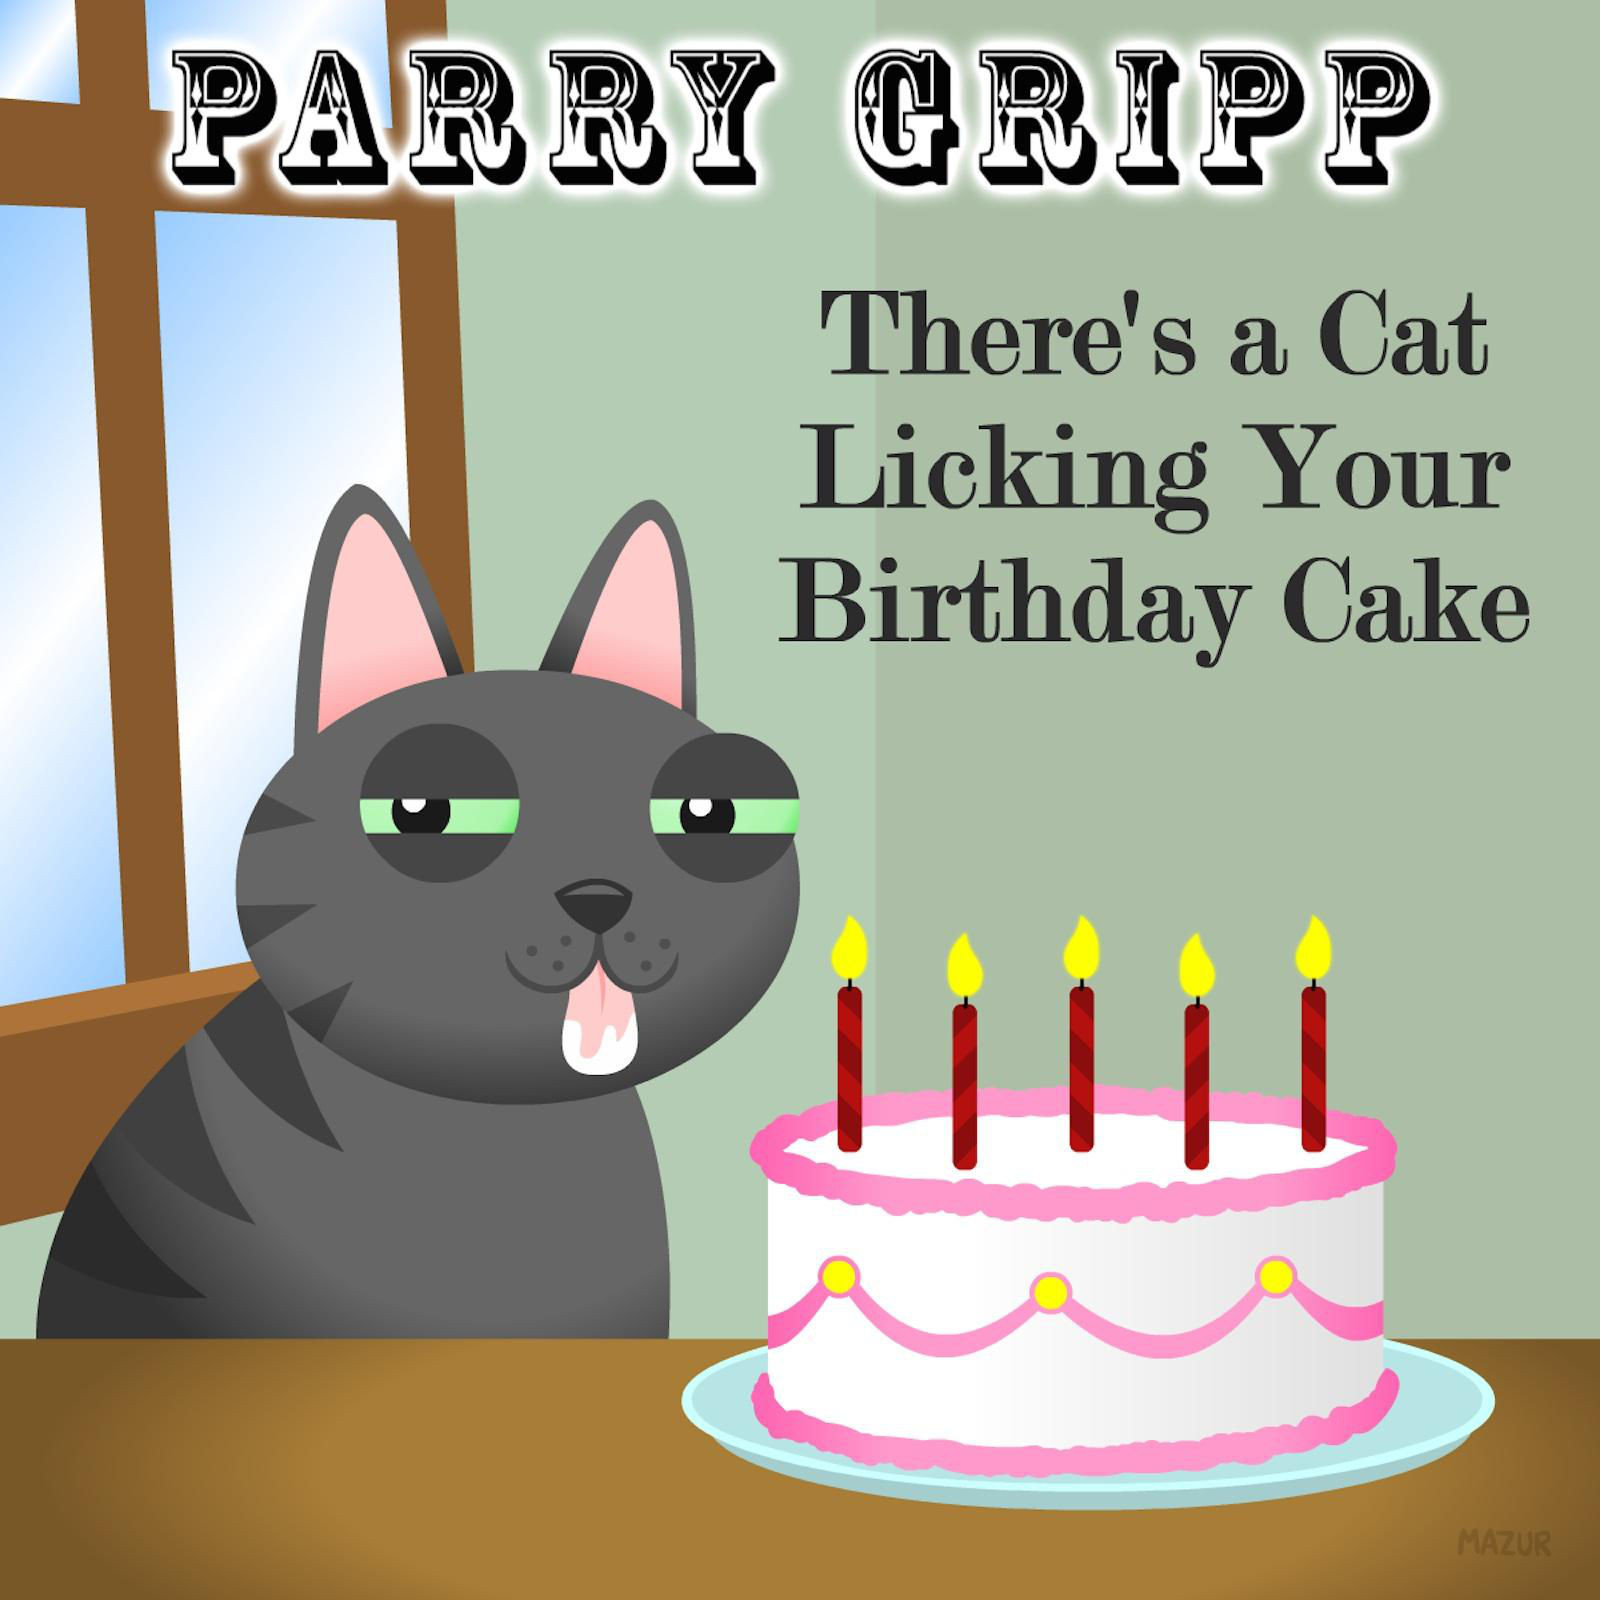 Best ideas about There's A Cat Licking Your Birthday Cake . Save or Pin There s a Cat Licking Your Birthday Cake Single by Parry Now.